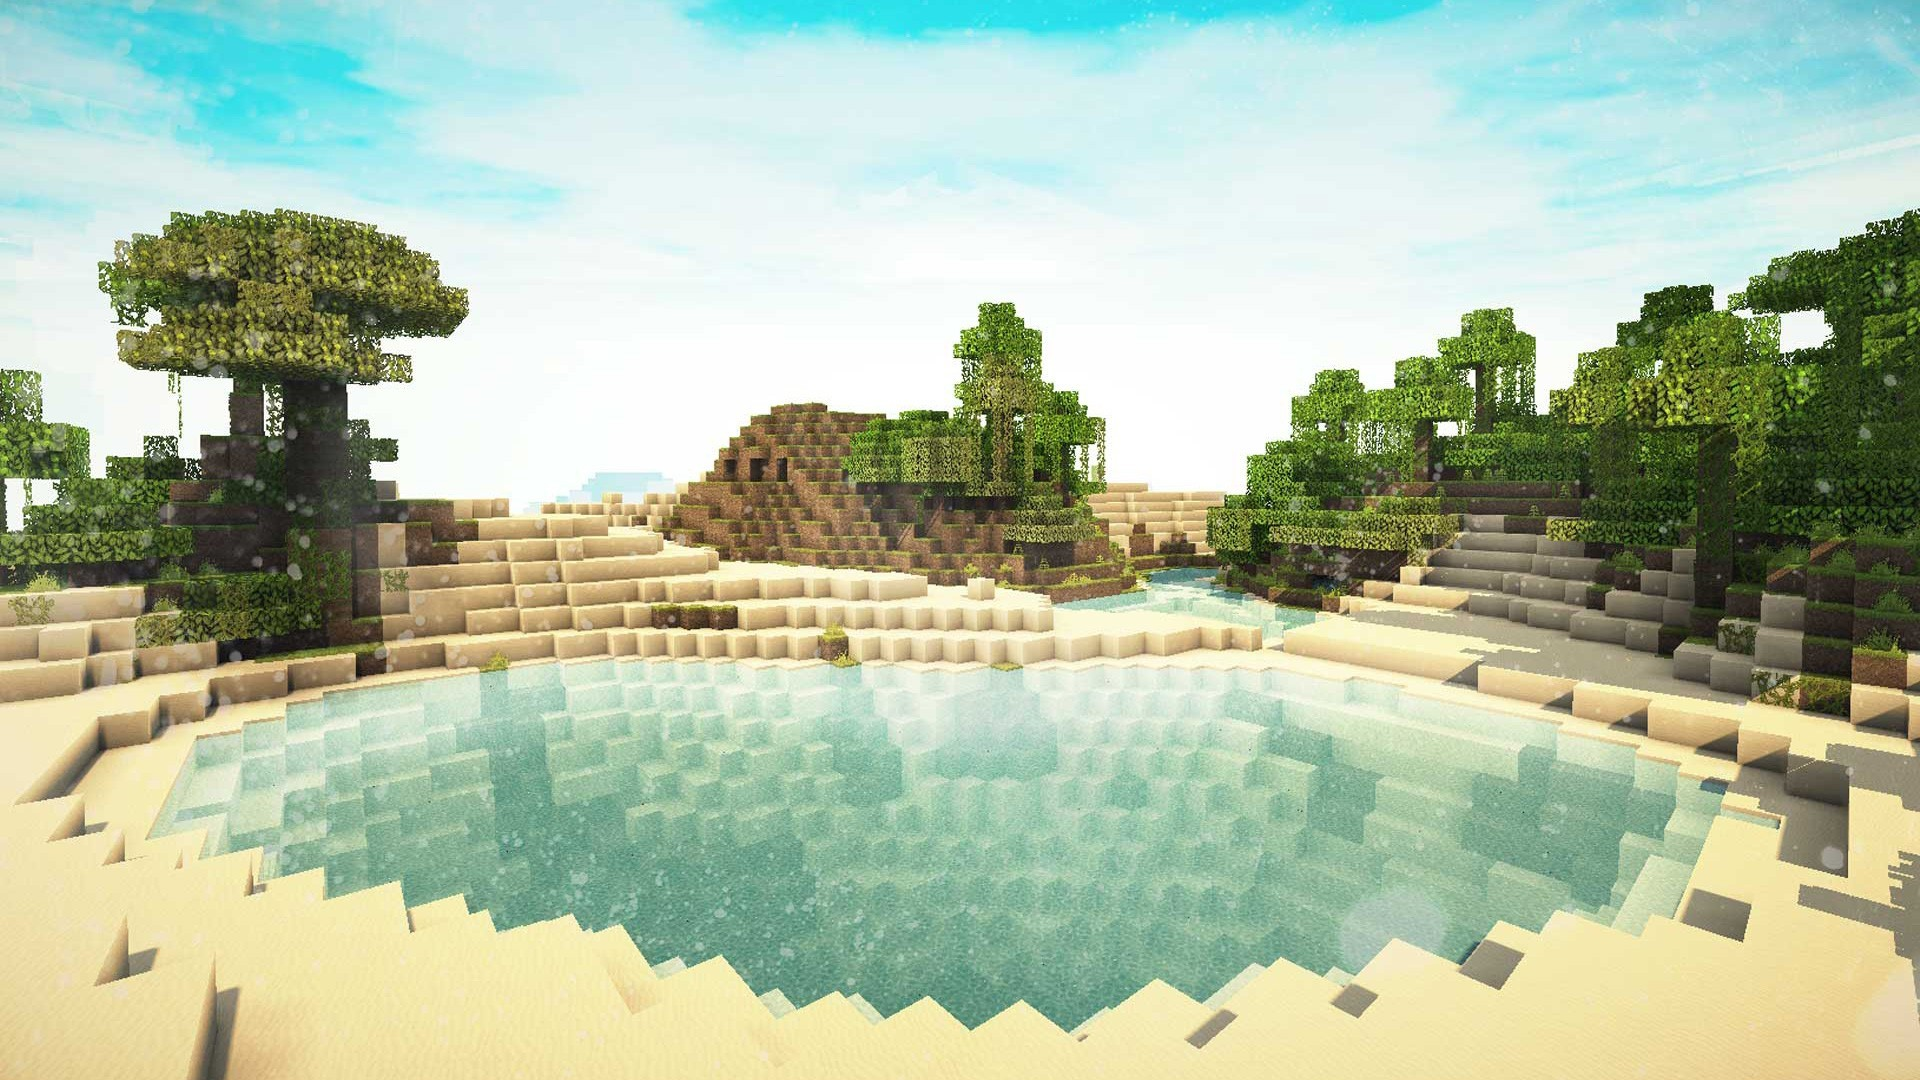 Hd Wallpapers Of Minecraft 82 Pictures